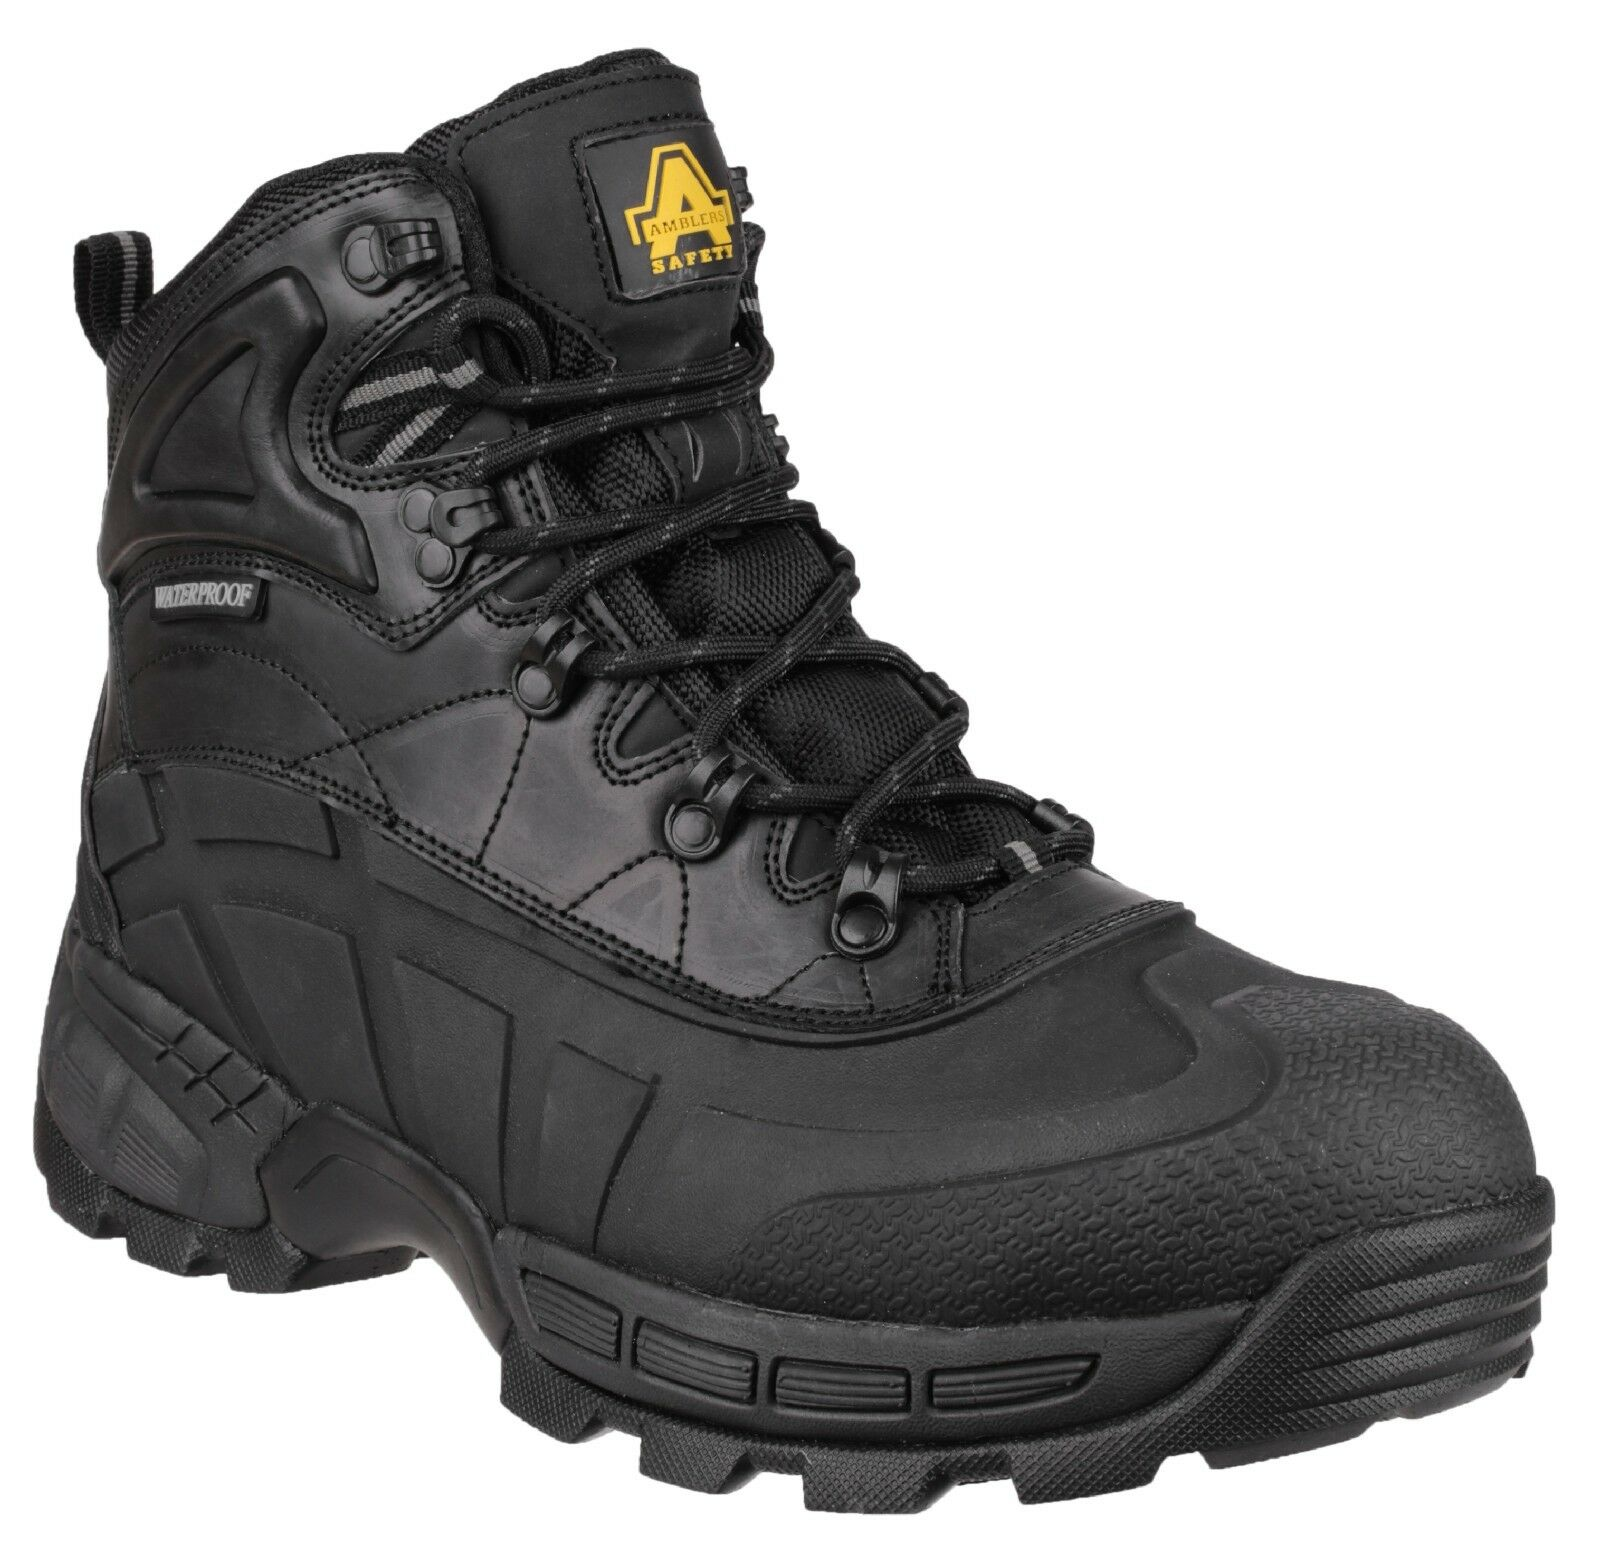 Amblers FS430 Orca S3 Waterproof Safety Work Boots Black 6-12 Lightweight